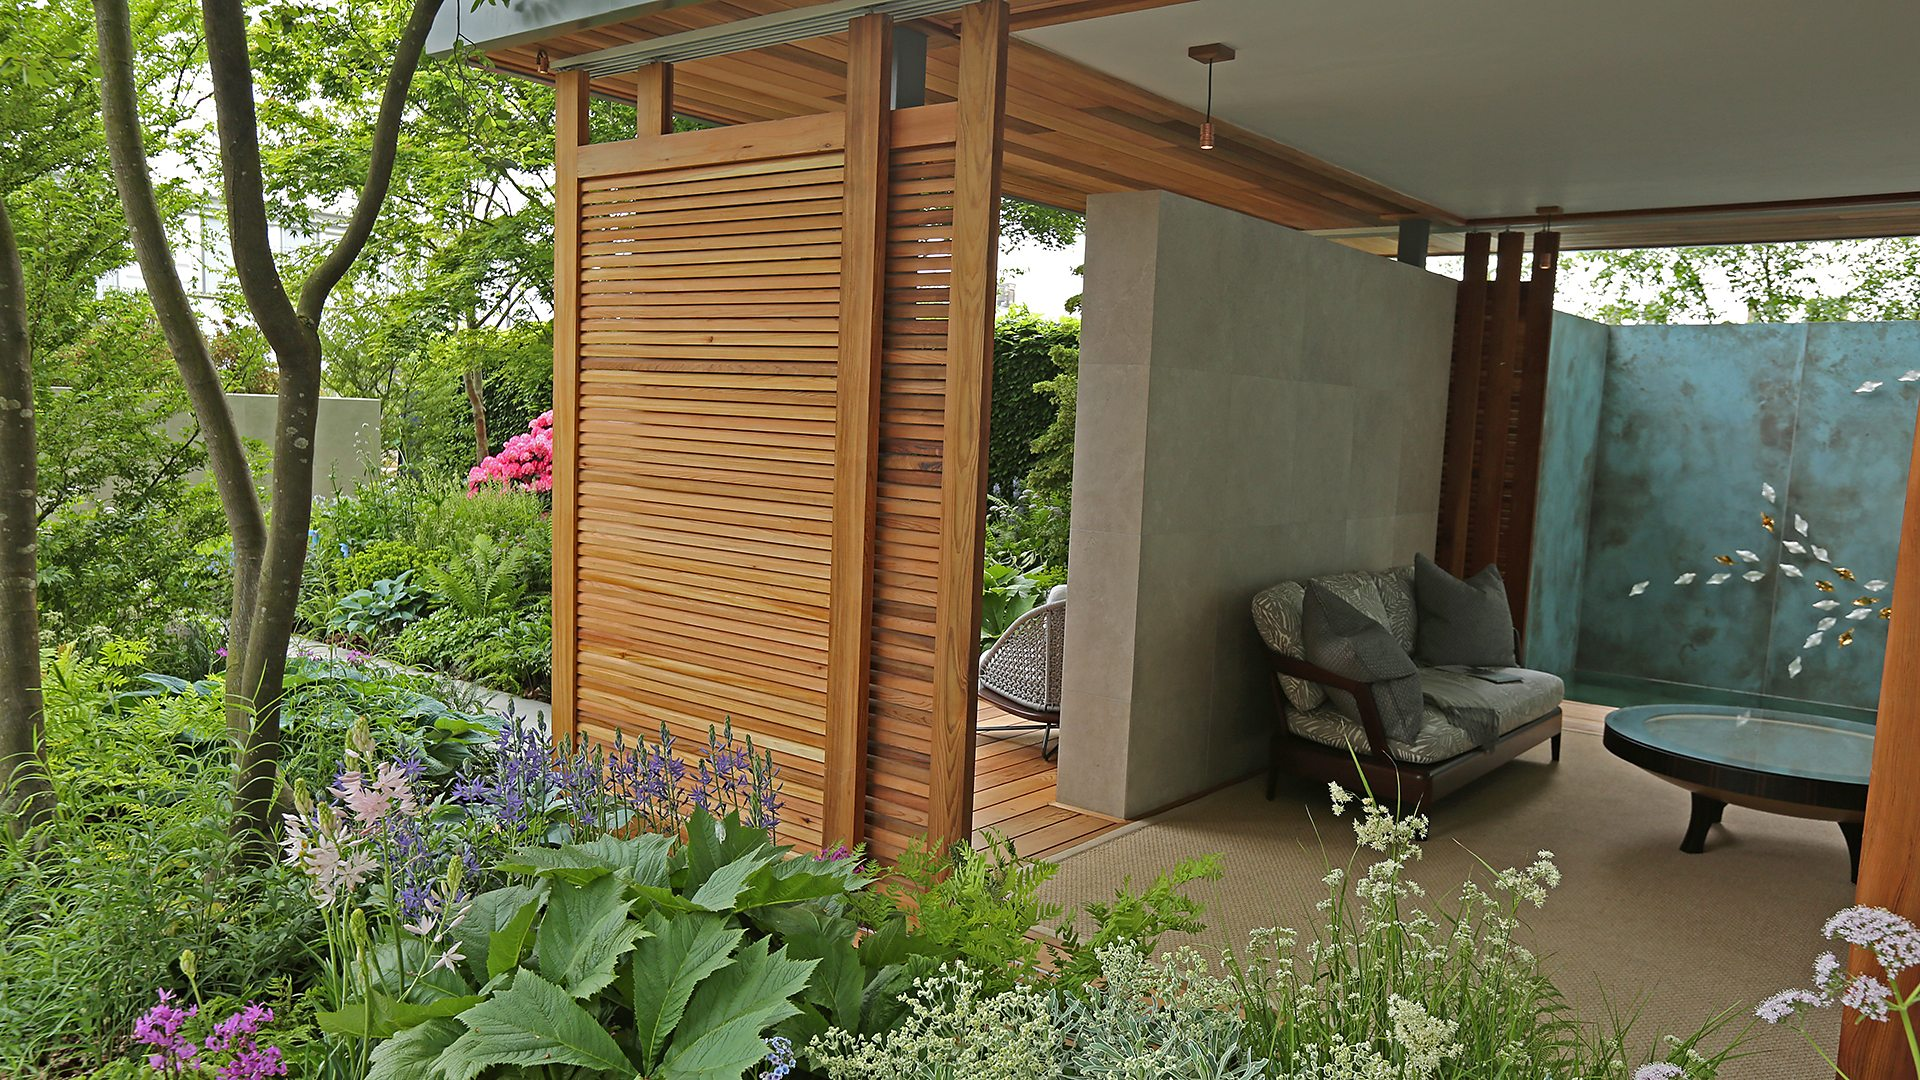 bbc two - rhs chelsea flower show - the morgan stanley garden for